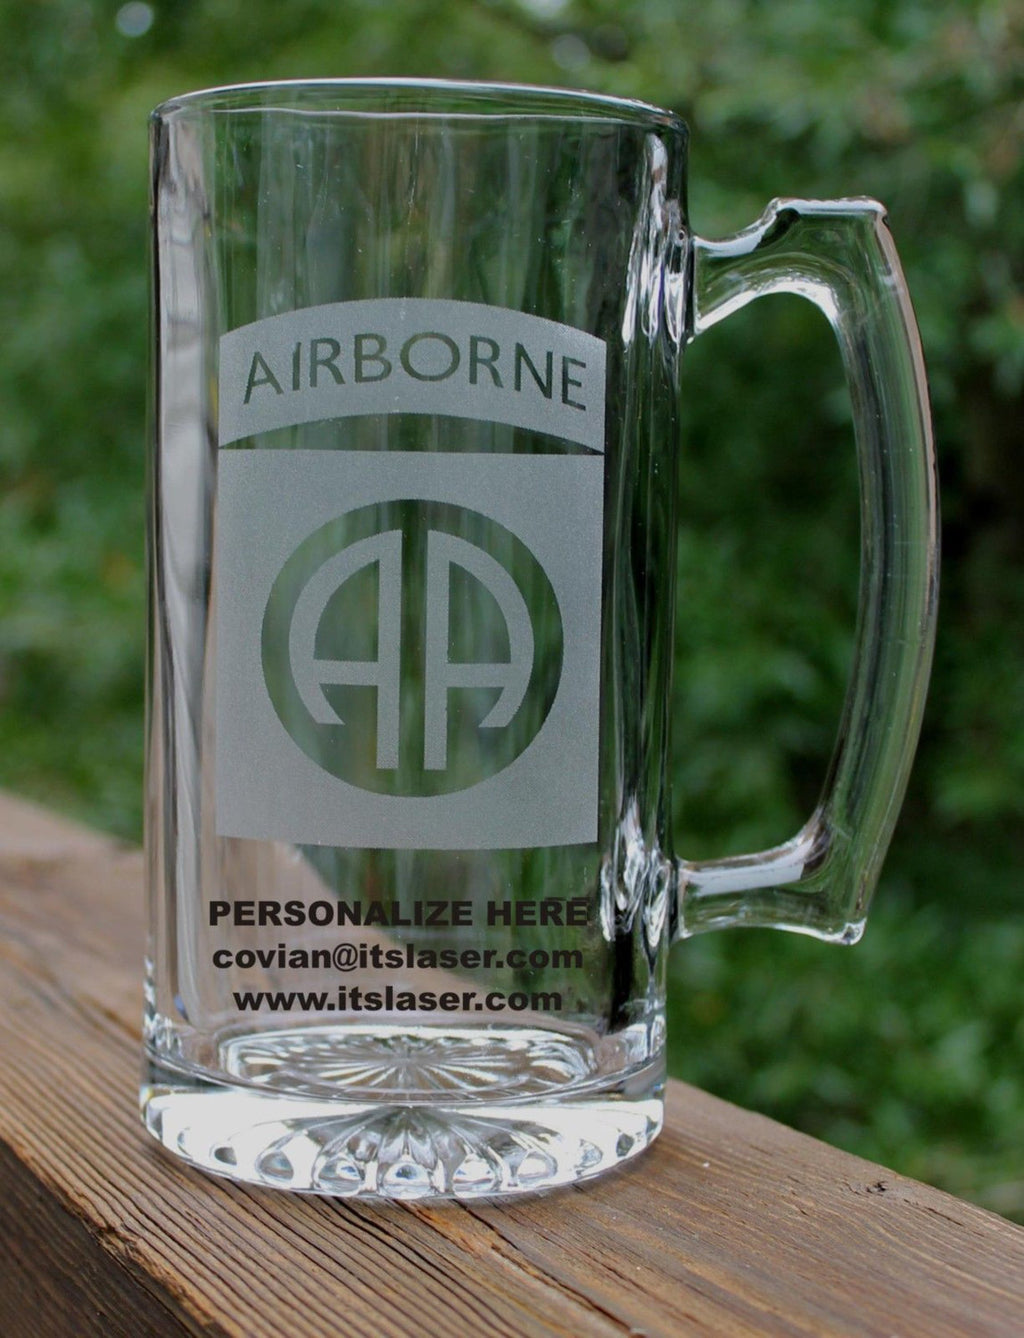 US ARMY 82ND Airborne Division Beer Mug